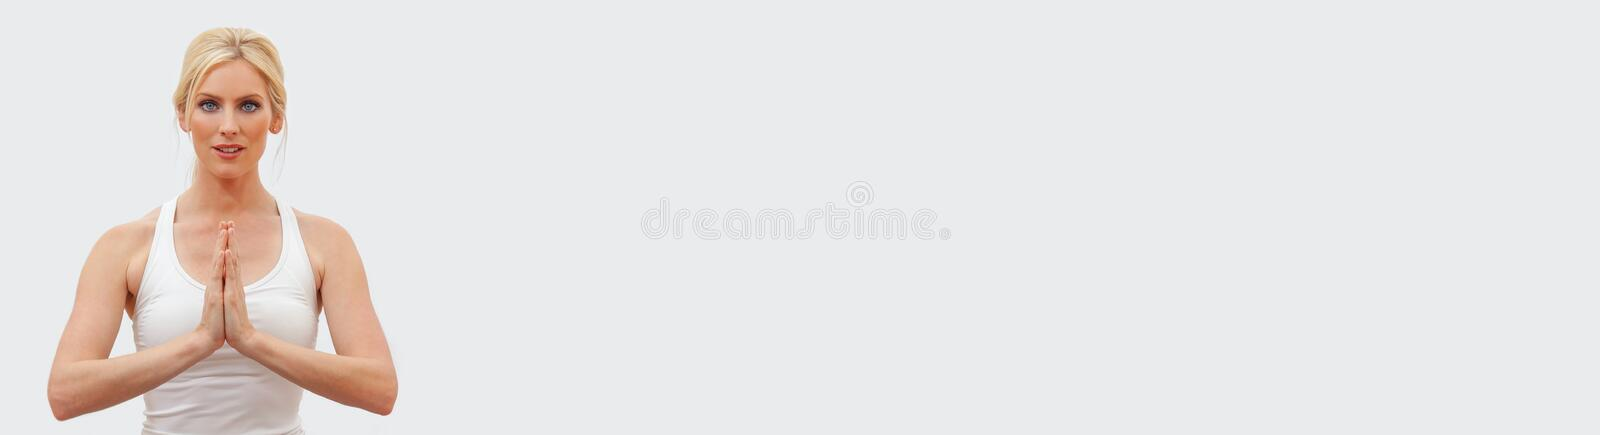 Young Female Woman Practicing Yoga Panorama Web Banner royalty free stock image